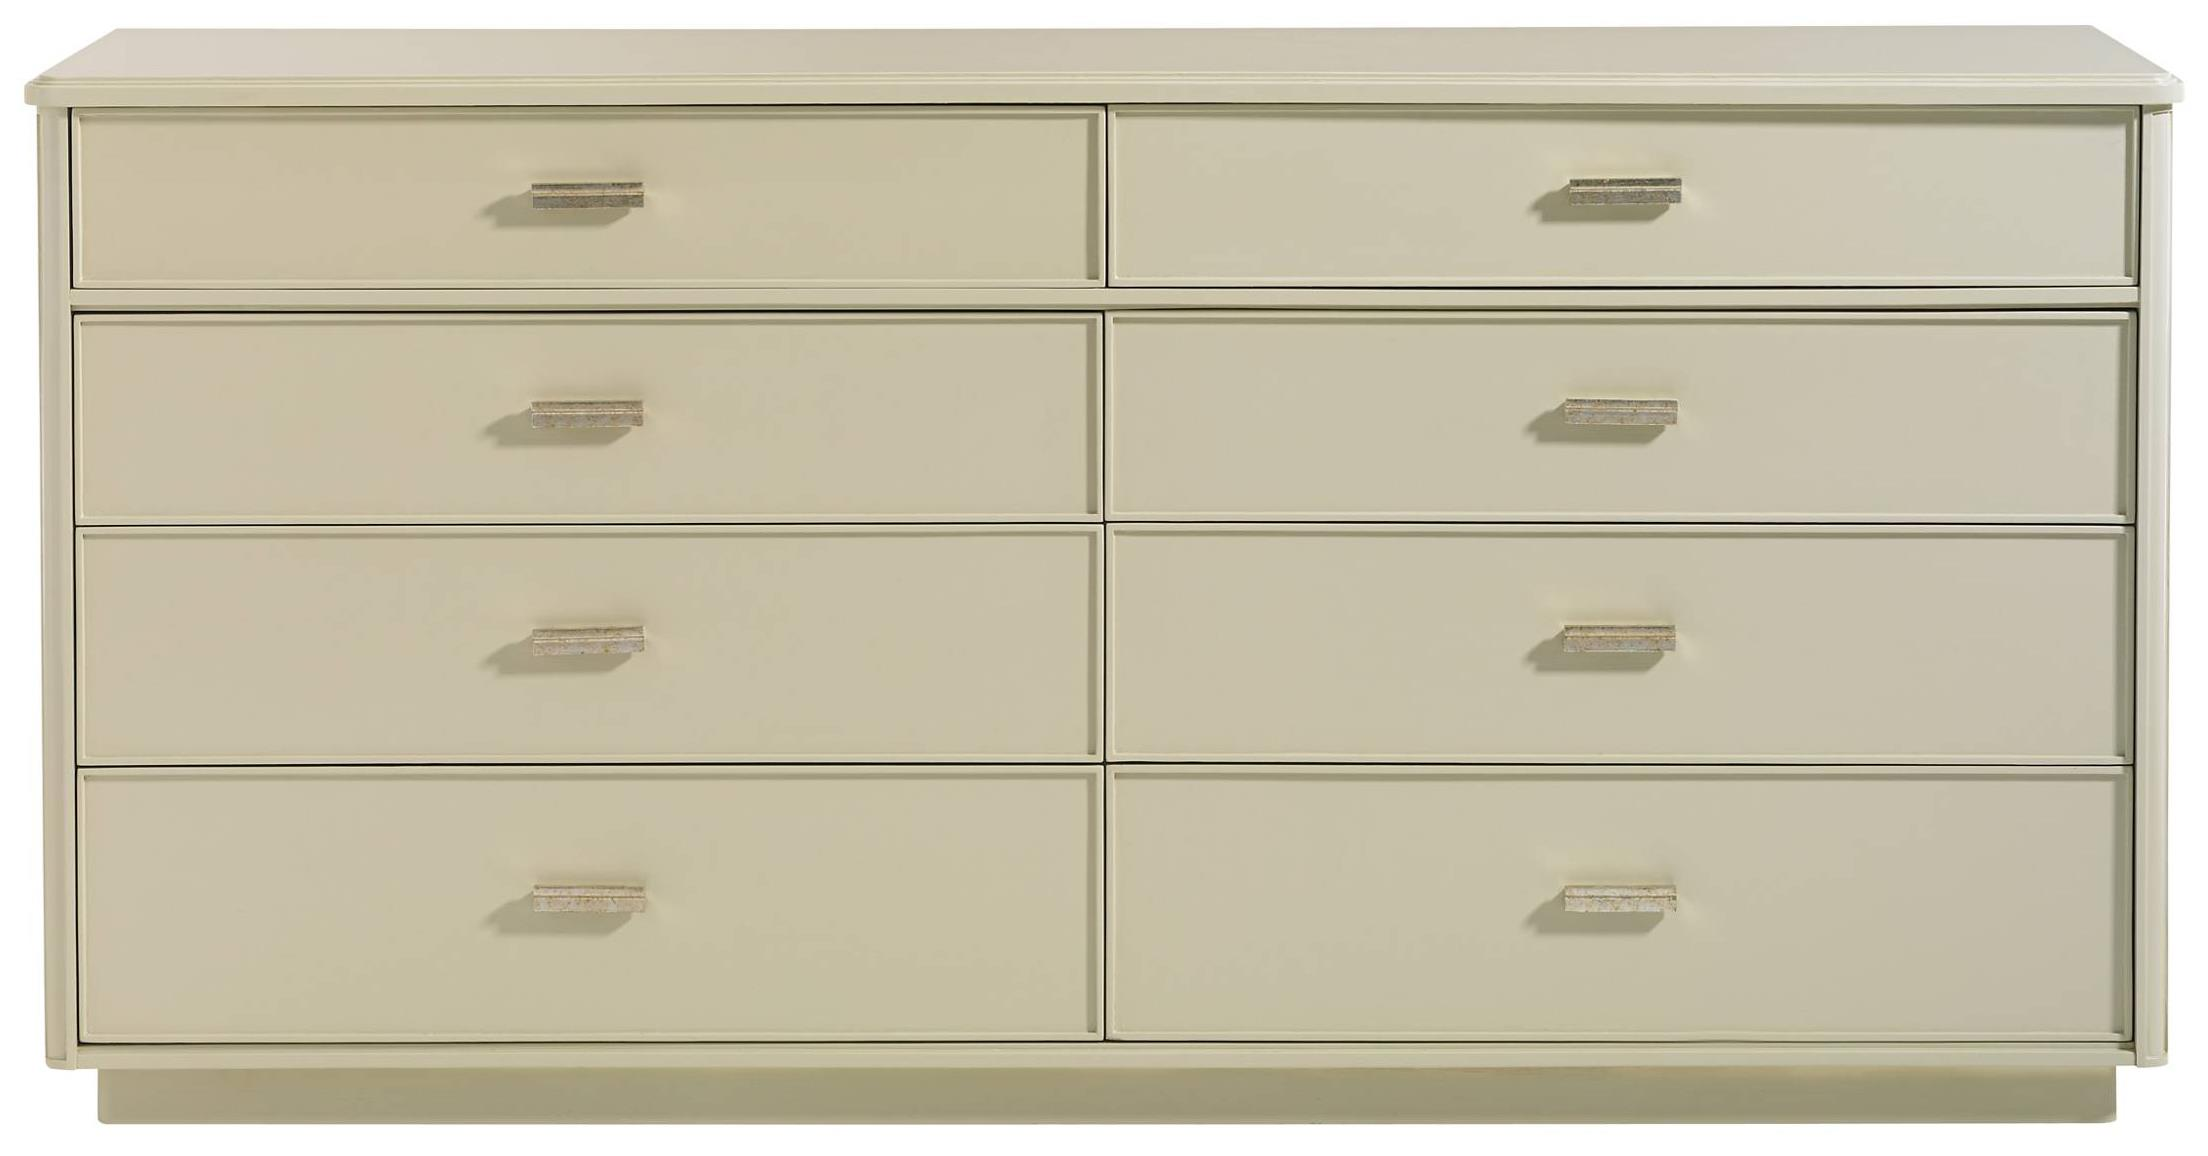 Stanley Furniture Crestaire Southridge Dresser - Item Number: 436-23-06